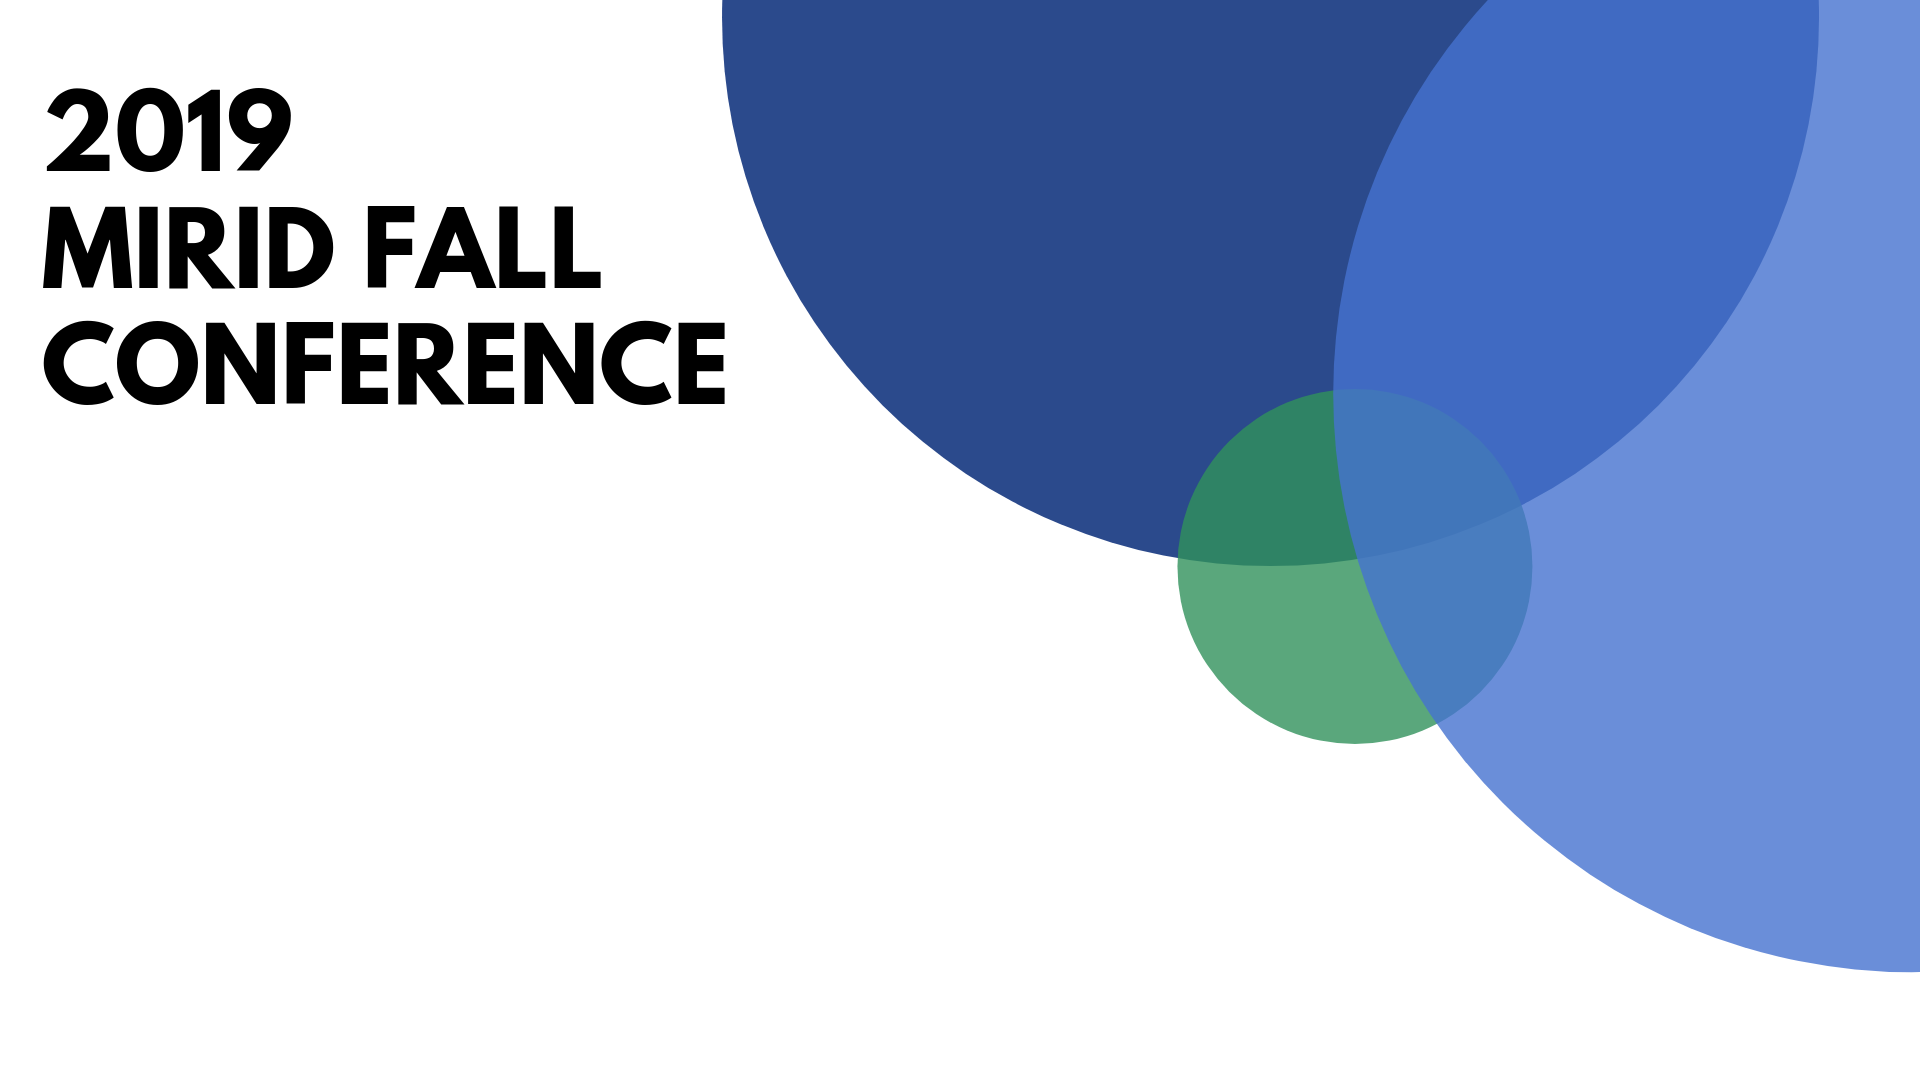 2019 MIRID Fall Conference